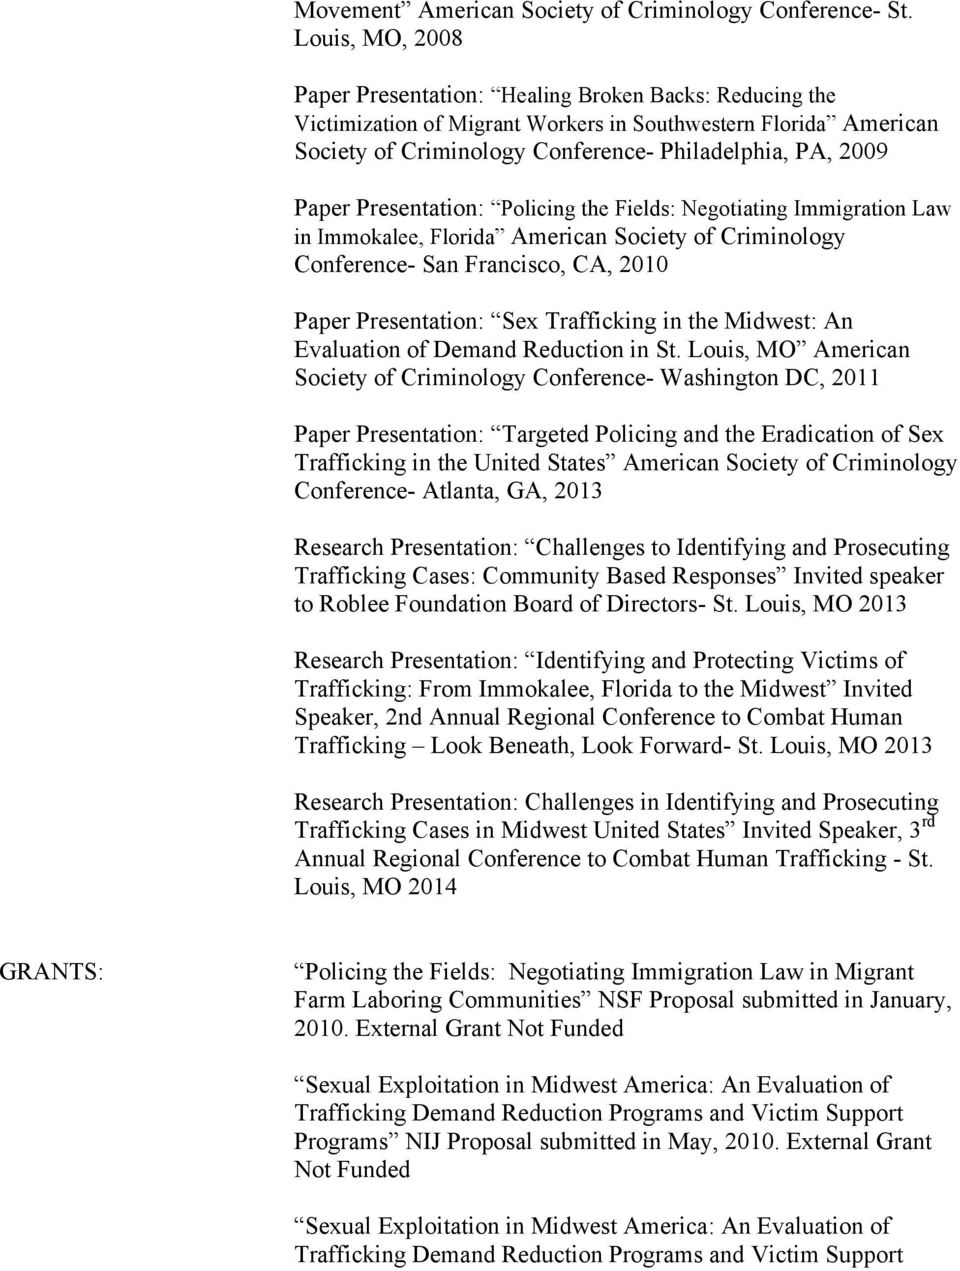 Paper Presentation: Policing the Fields: Negotiating Immigration Law in Immokalee, Florida American Society of Criminology Conference- San Francisco, CA, 2010 Paper Presentation: Sex Trafficking in